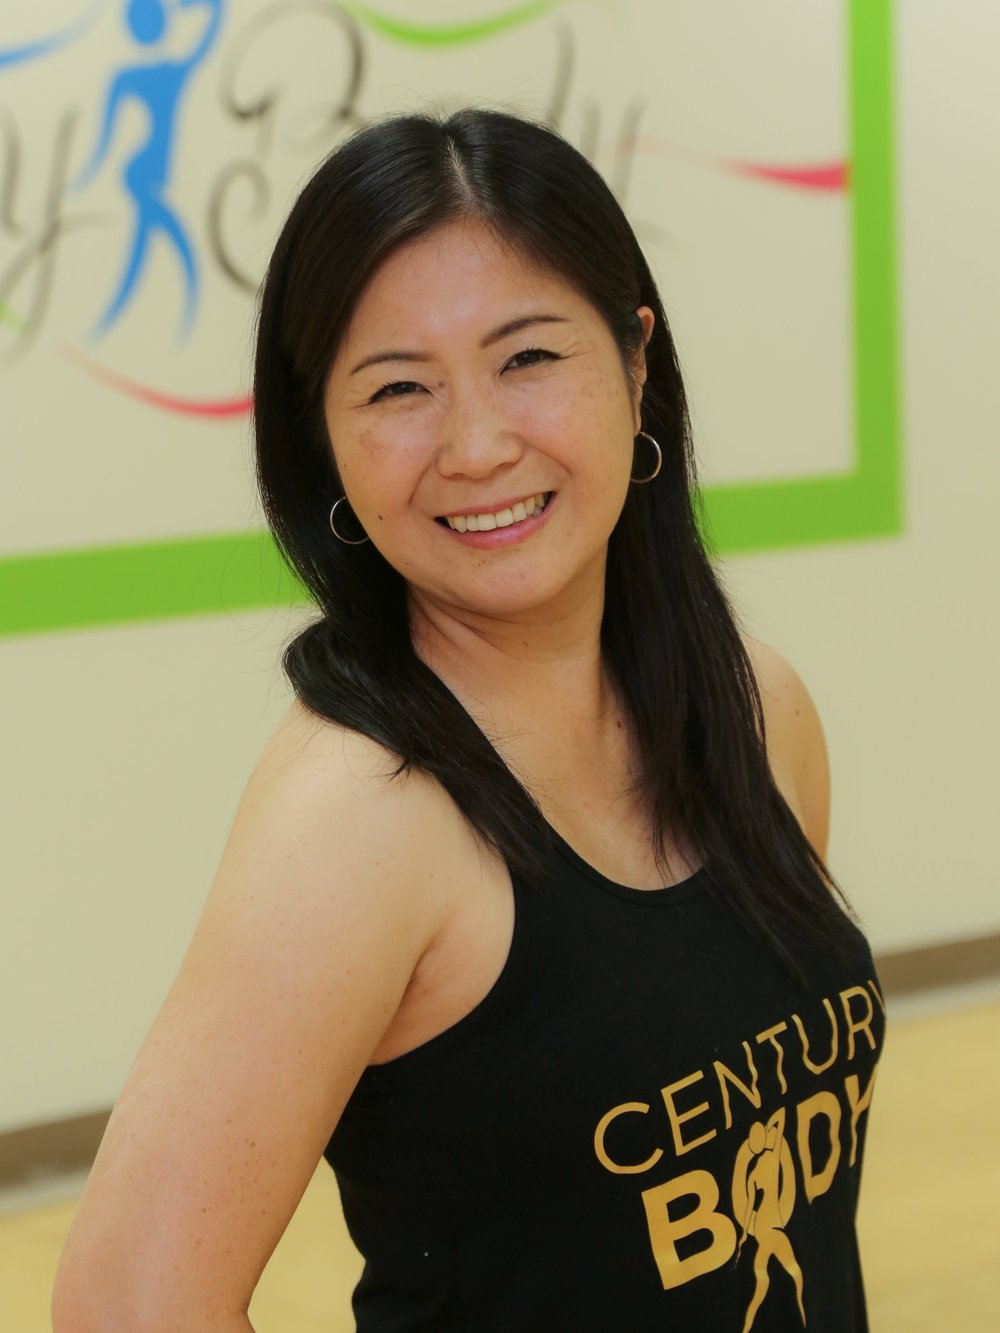 Tomoka Ichikawa   I've been part of the Century Body crew for 5 years. Zumba® Fitness captures everything I love — dance, music and passion. There's something unifying about having fun on the dance floor and getting sweaty together. My main goals as an instructor is to see you happy. If that means putting together a high energy playlist that gets you jumping all across the dance floor, then so be it. Come and join the fun!